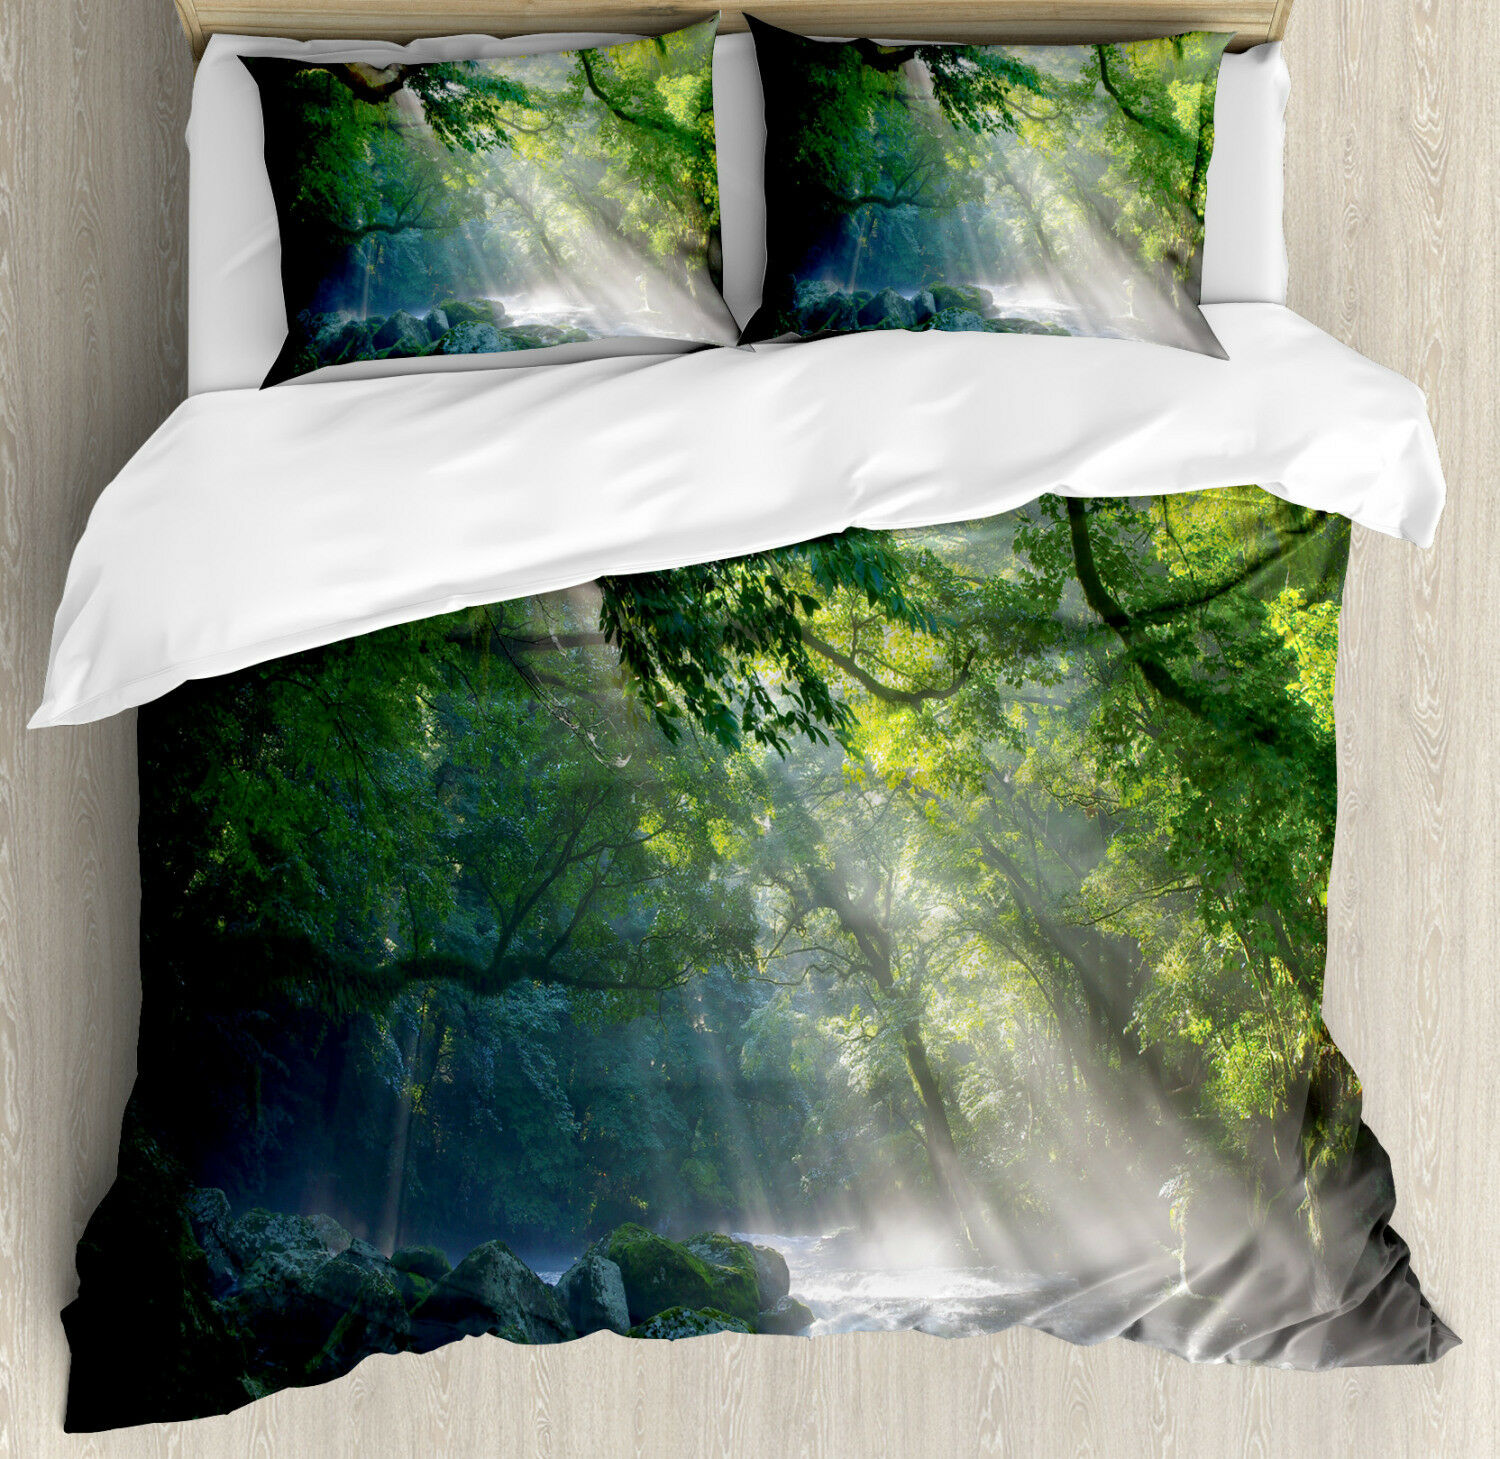 Nature Duvet Cover Set with Pillow Shams Jungle Sunlight Trees Print